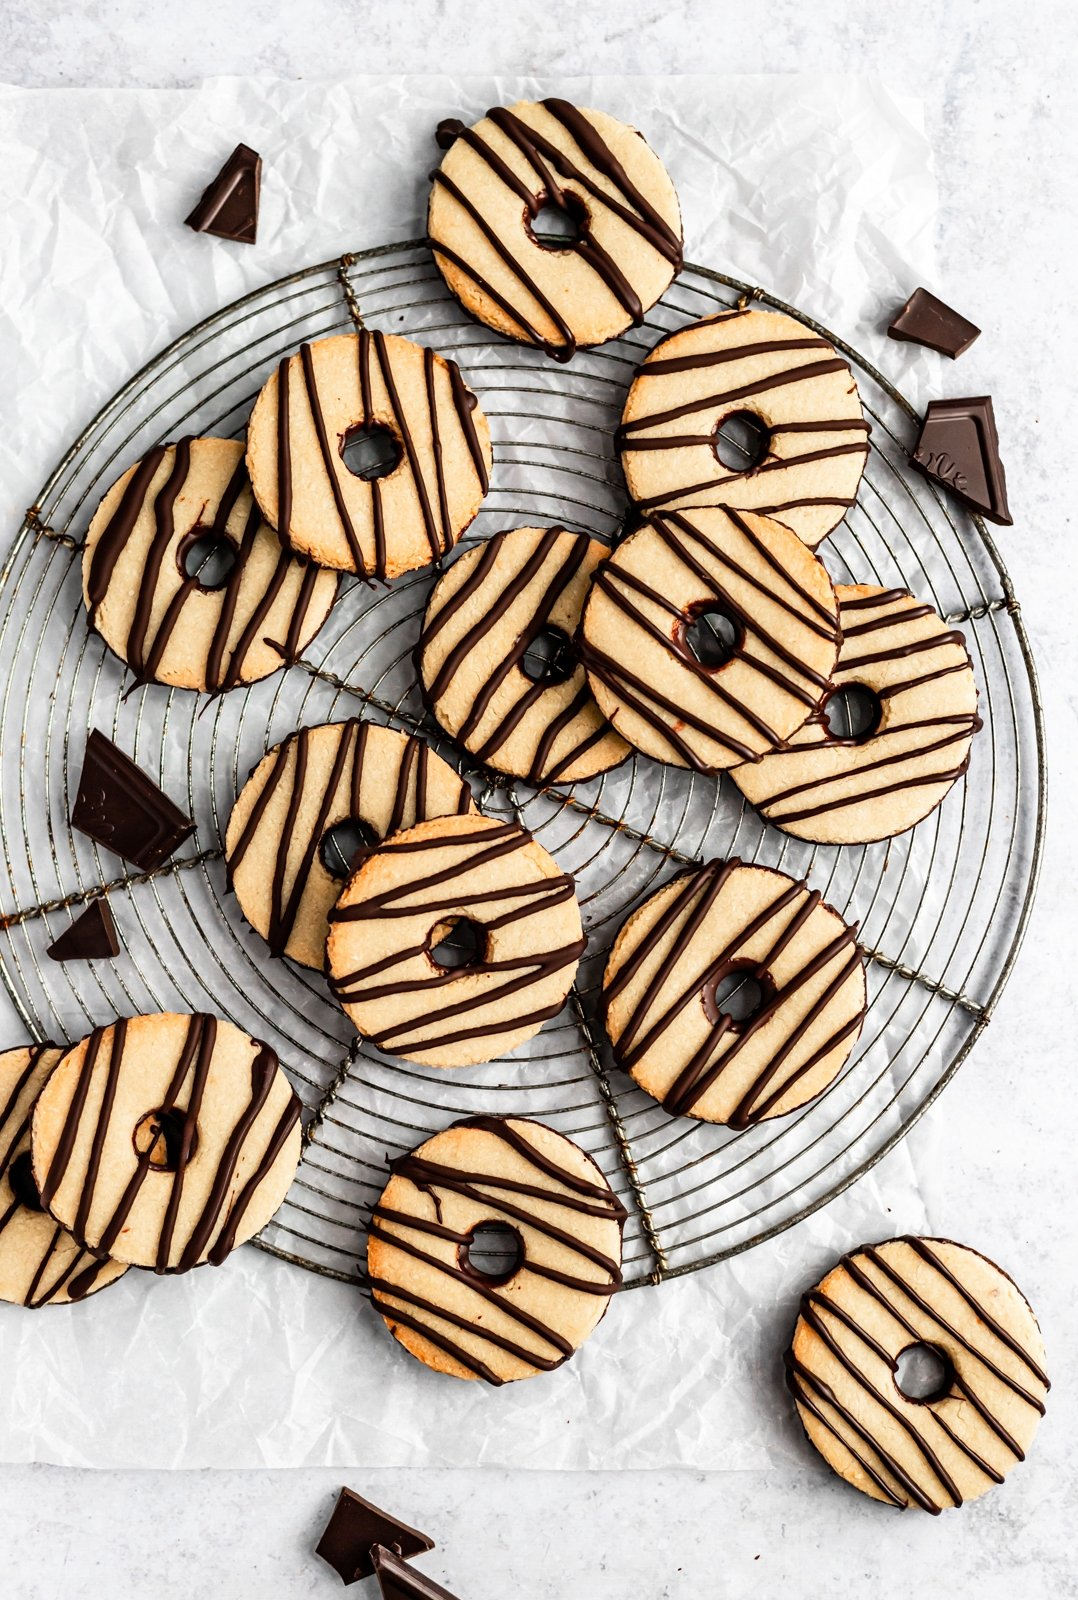 gluten free shortbread fudge striped cookies on a wire rack